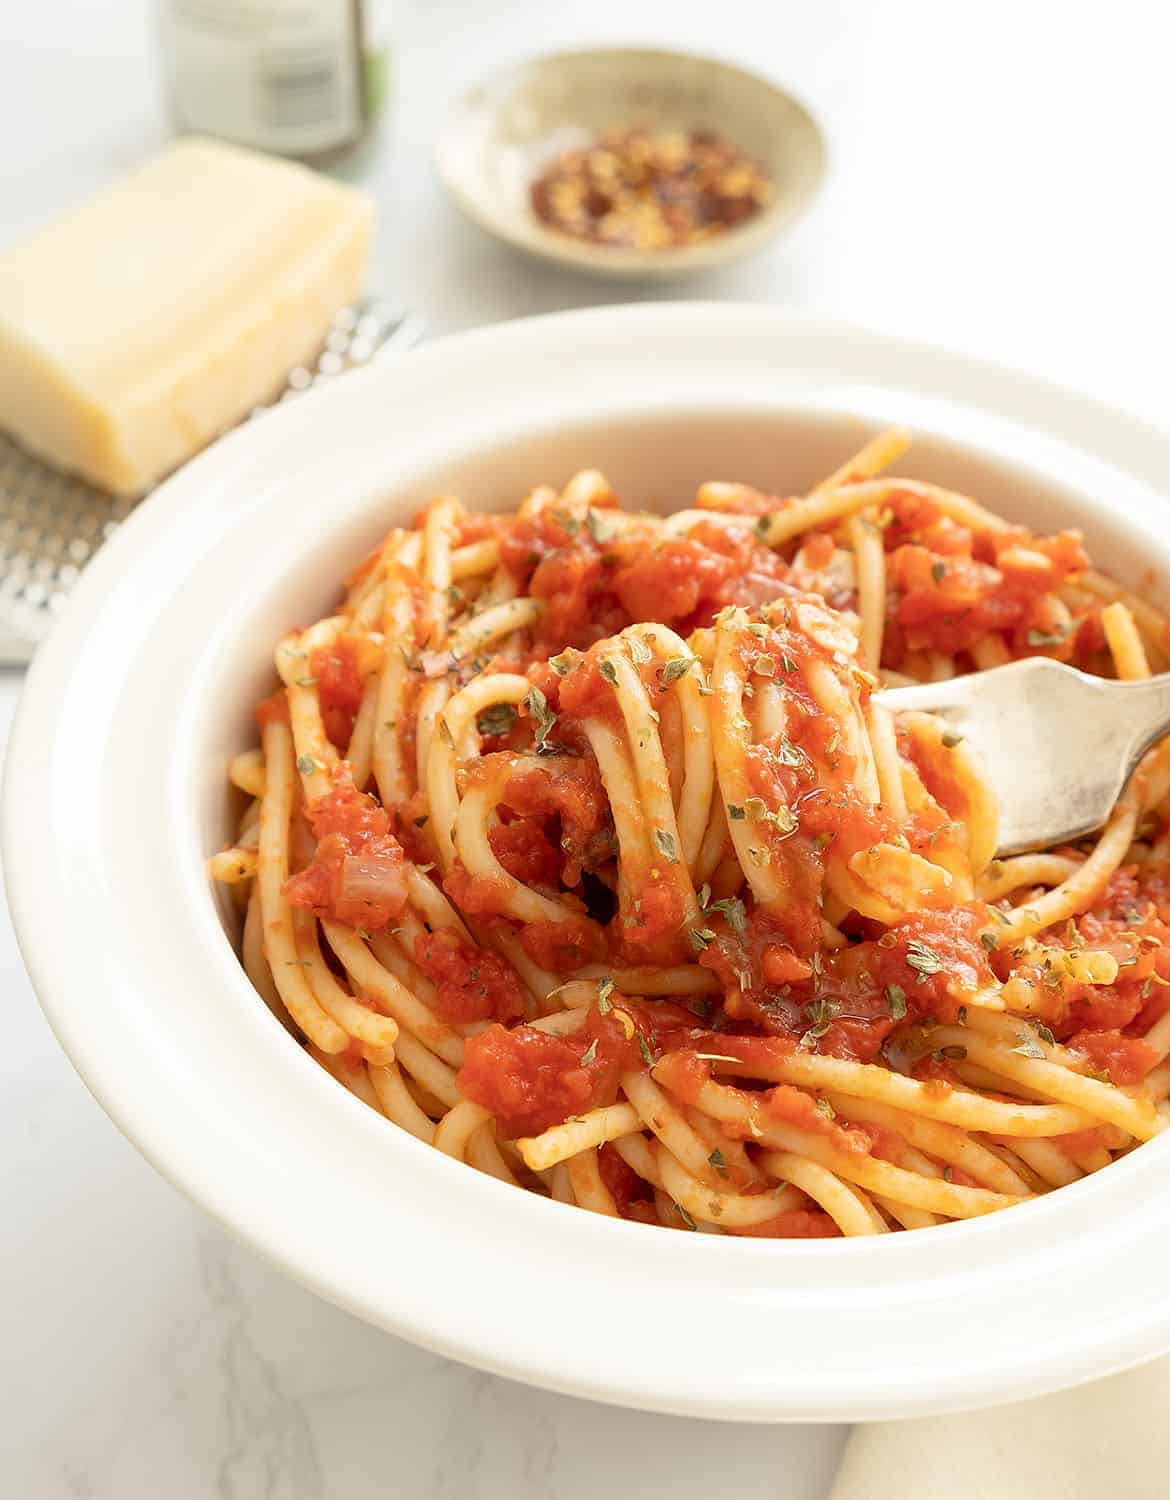 Quick spaghetti marinara in a white bowl with a fork.